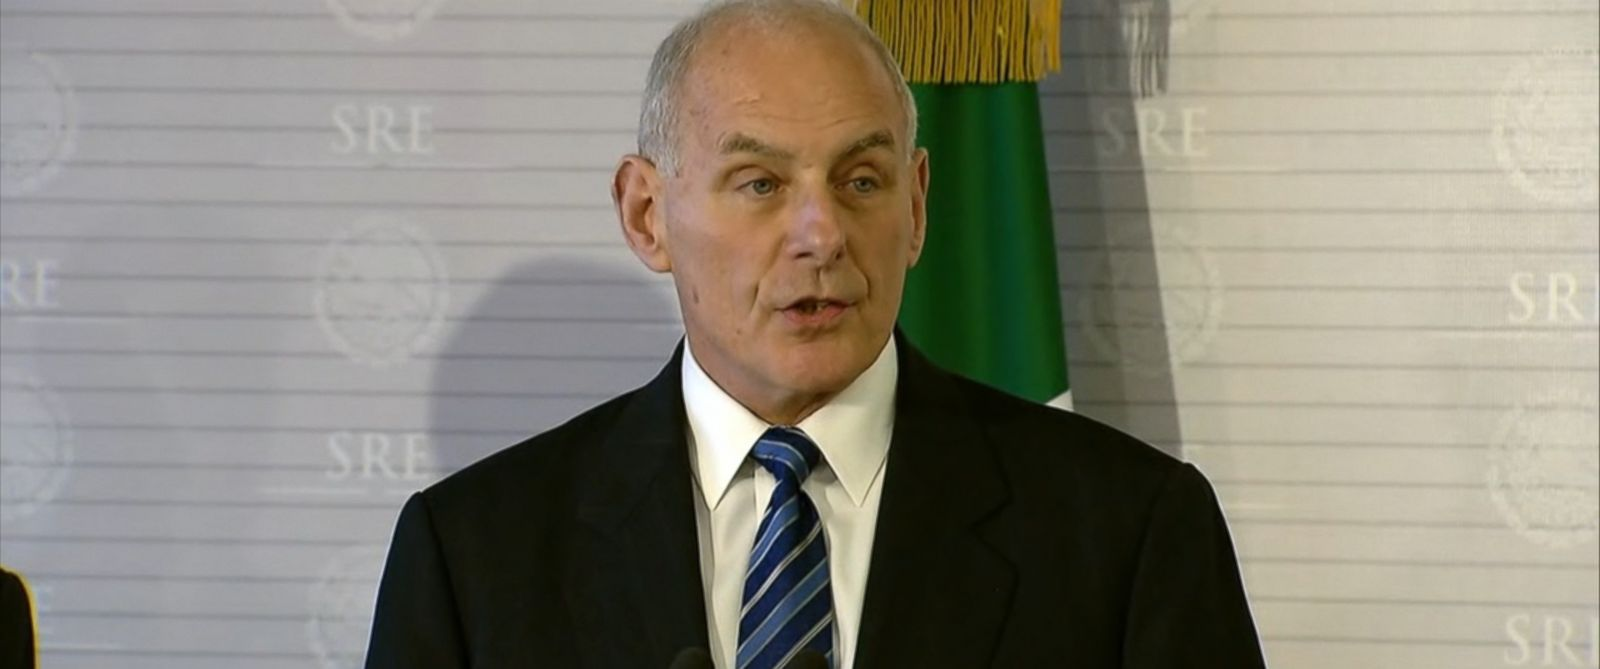 "VIDEO: Just hours after President Donald Trump described his new deportation policies as ""a military operation,"" Secretary of Homeland Security John Kelly criticized the media for using that term and insisted there will be no ""mass deportations."""